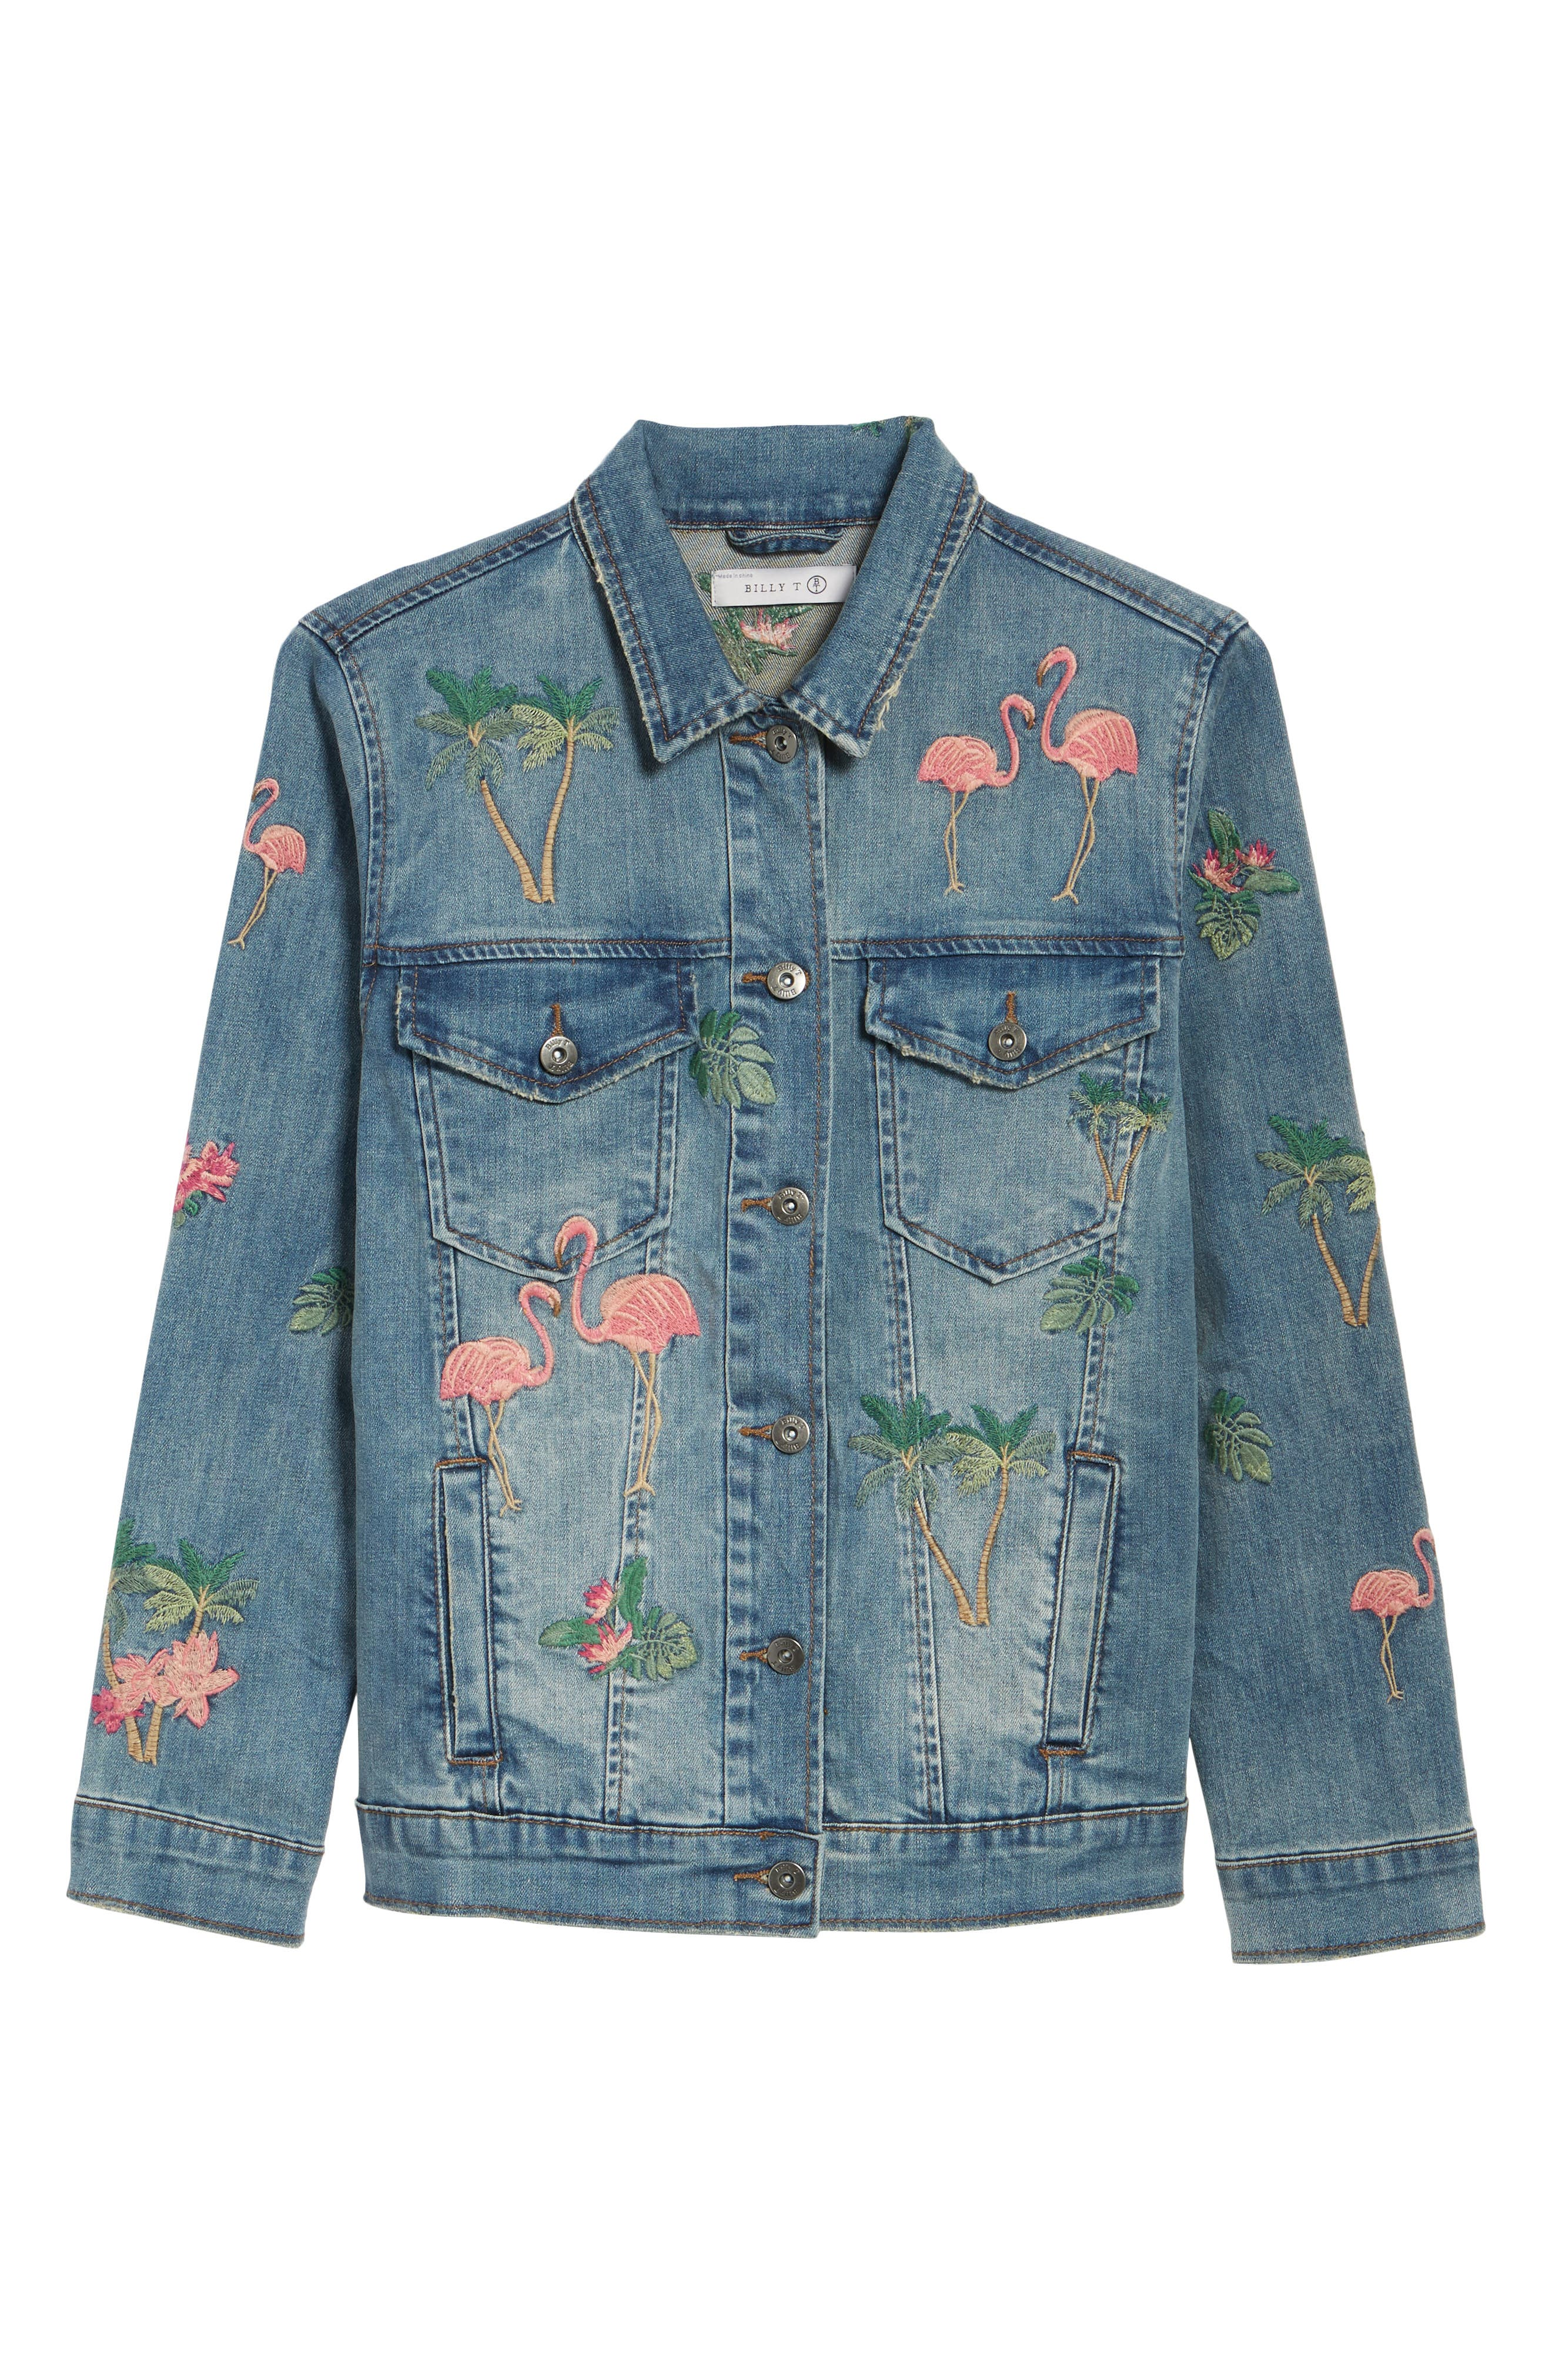 Flamingo Embroidered Denim Jacket,                             Alternate thumbnail 6, color,                             421